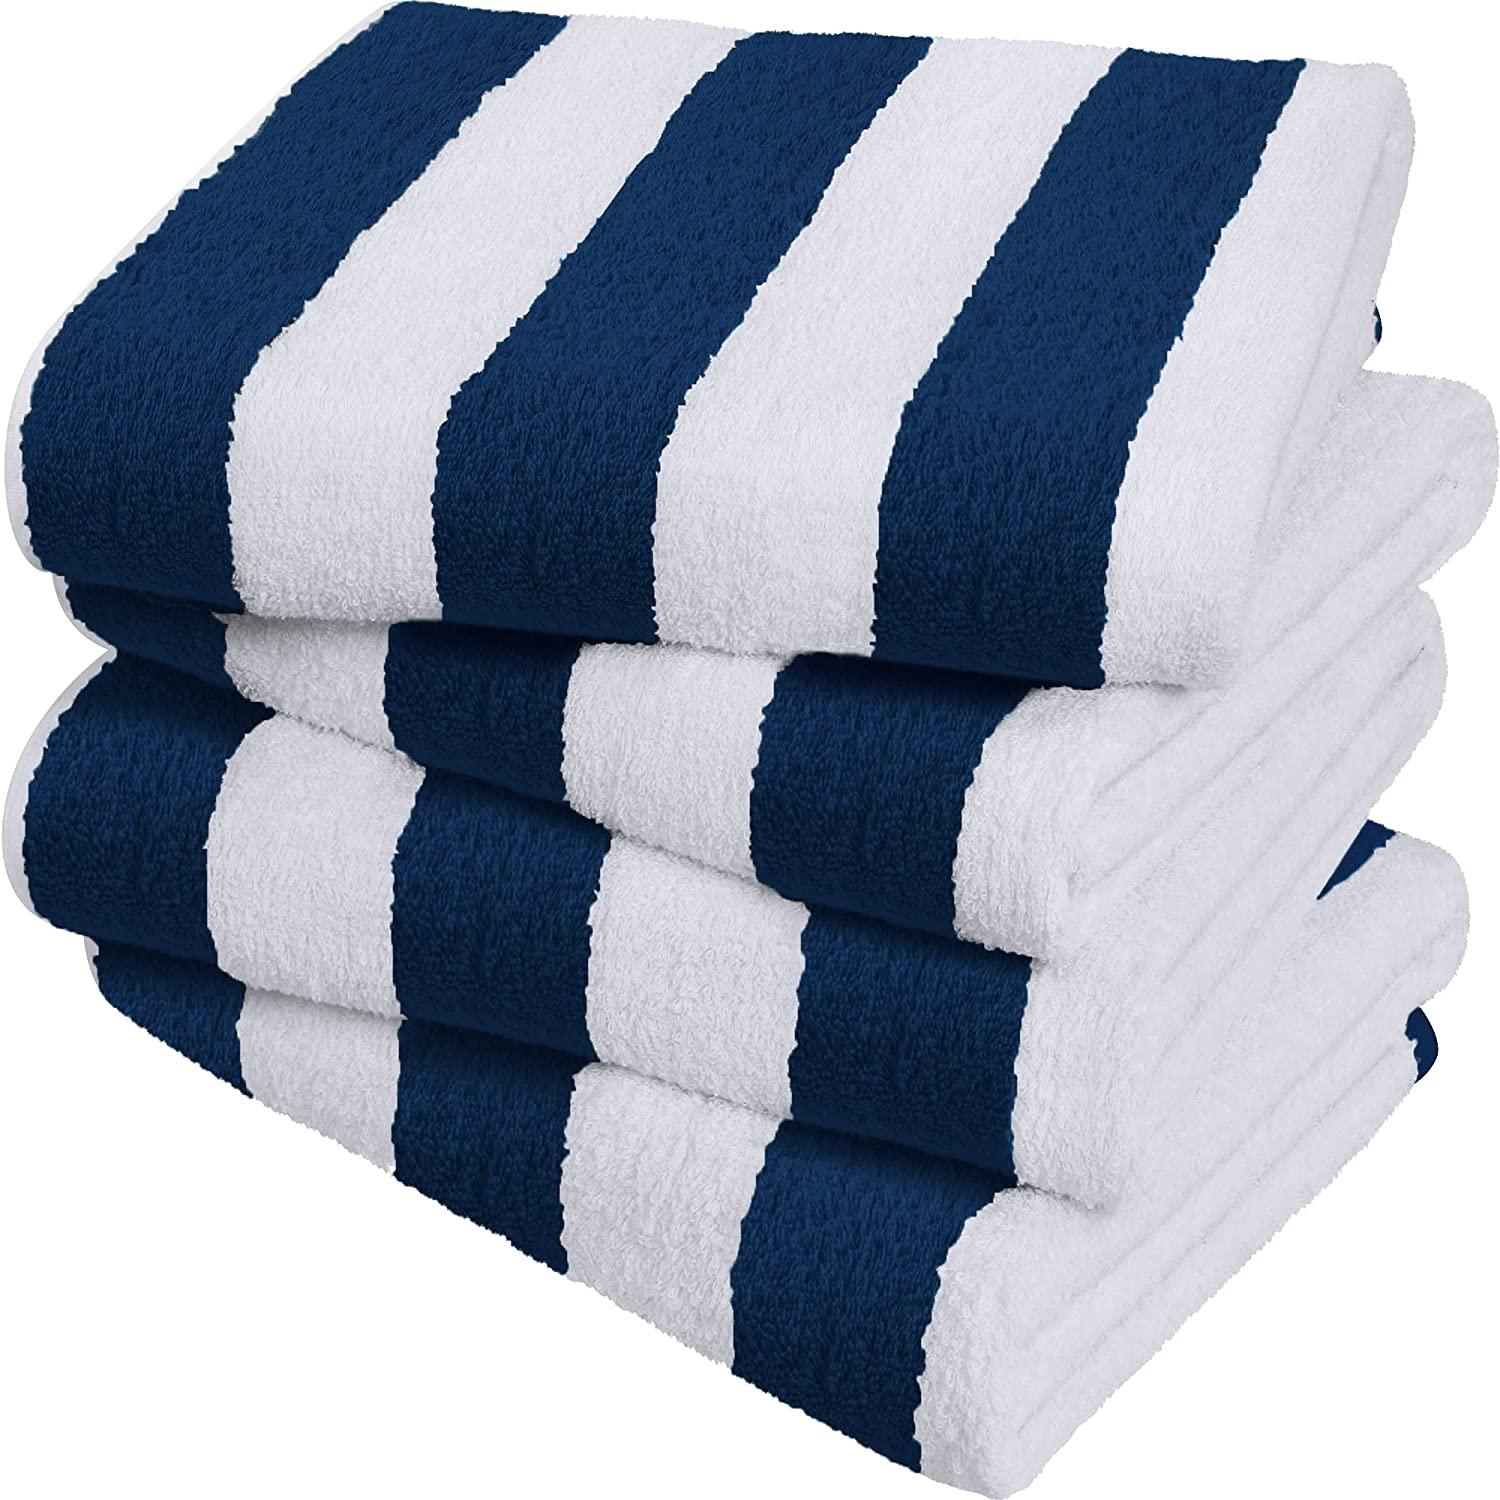 Utopia Towels Cabana Stripe Beach Towels, Navy, (30 x 60 Inches) - 100% Ring Spun Cotton Large Pool Towels, Soft and Quick Dry Swim Towels (Pack of 4)